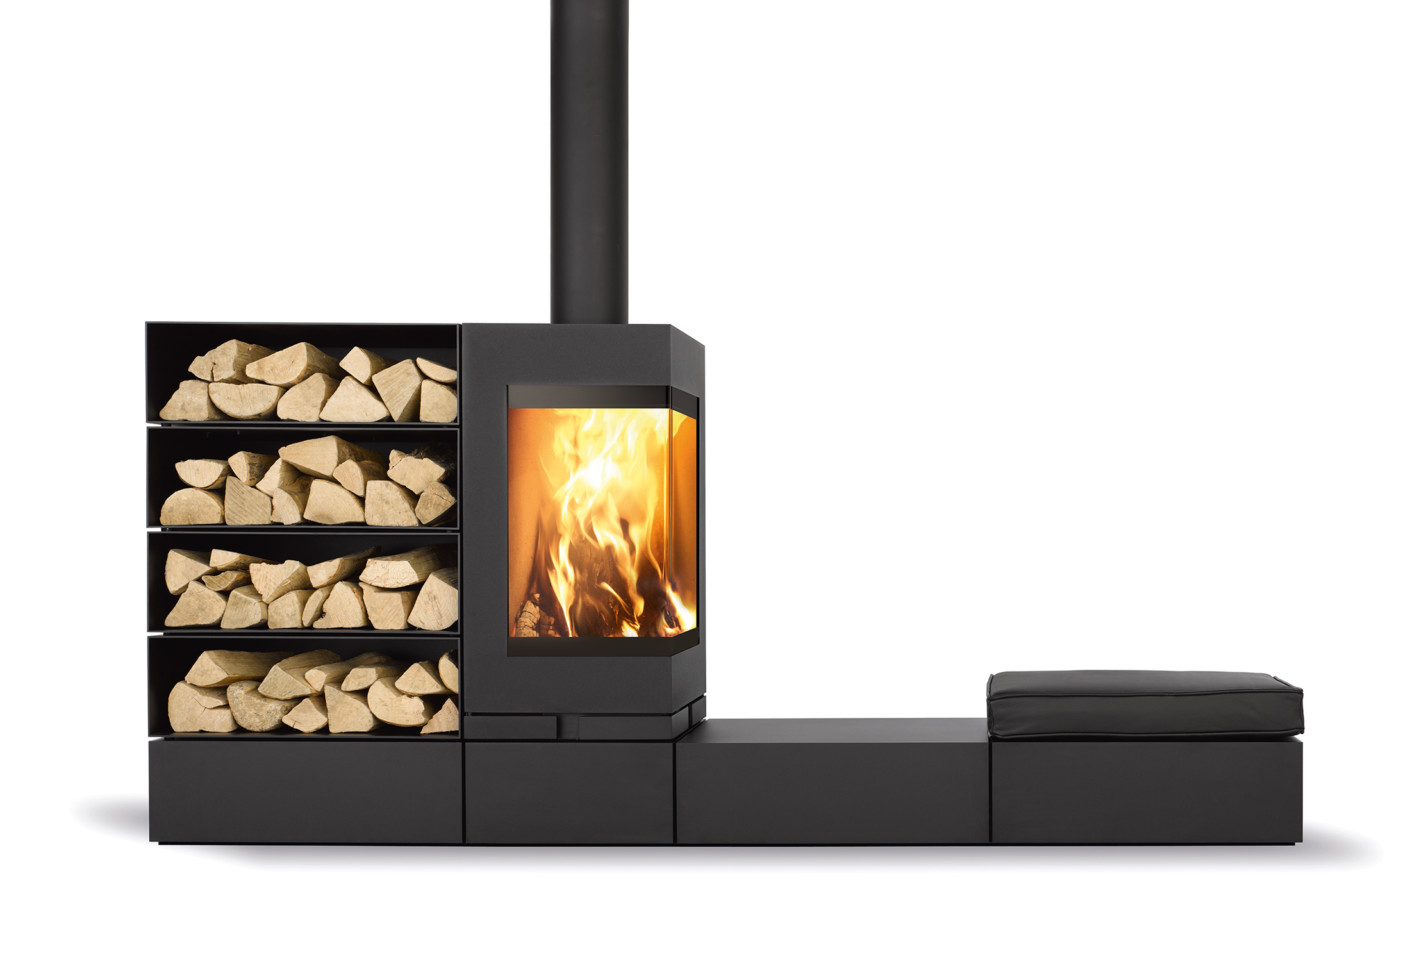 chamber stoves guestbook chamber stoves guestbook town equipment y 2 ss york 174. Black Bedroom Furniture Sets. Home Design Ideas